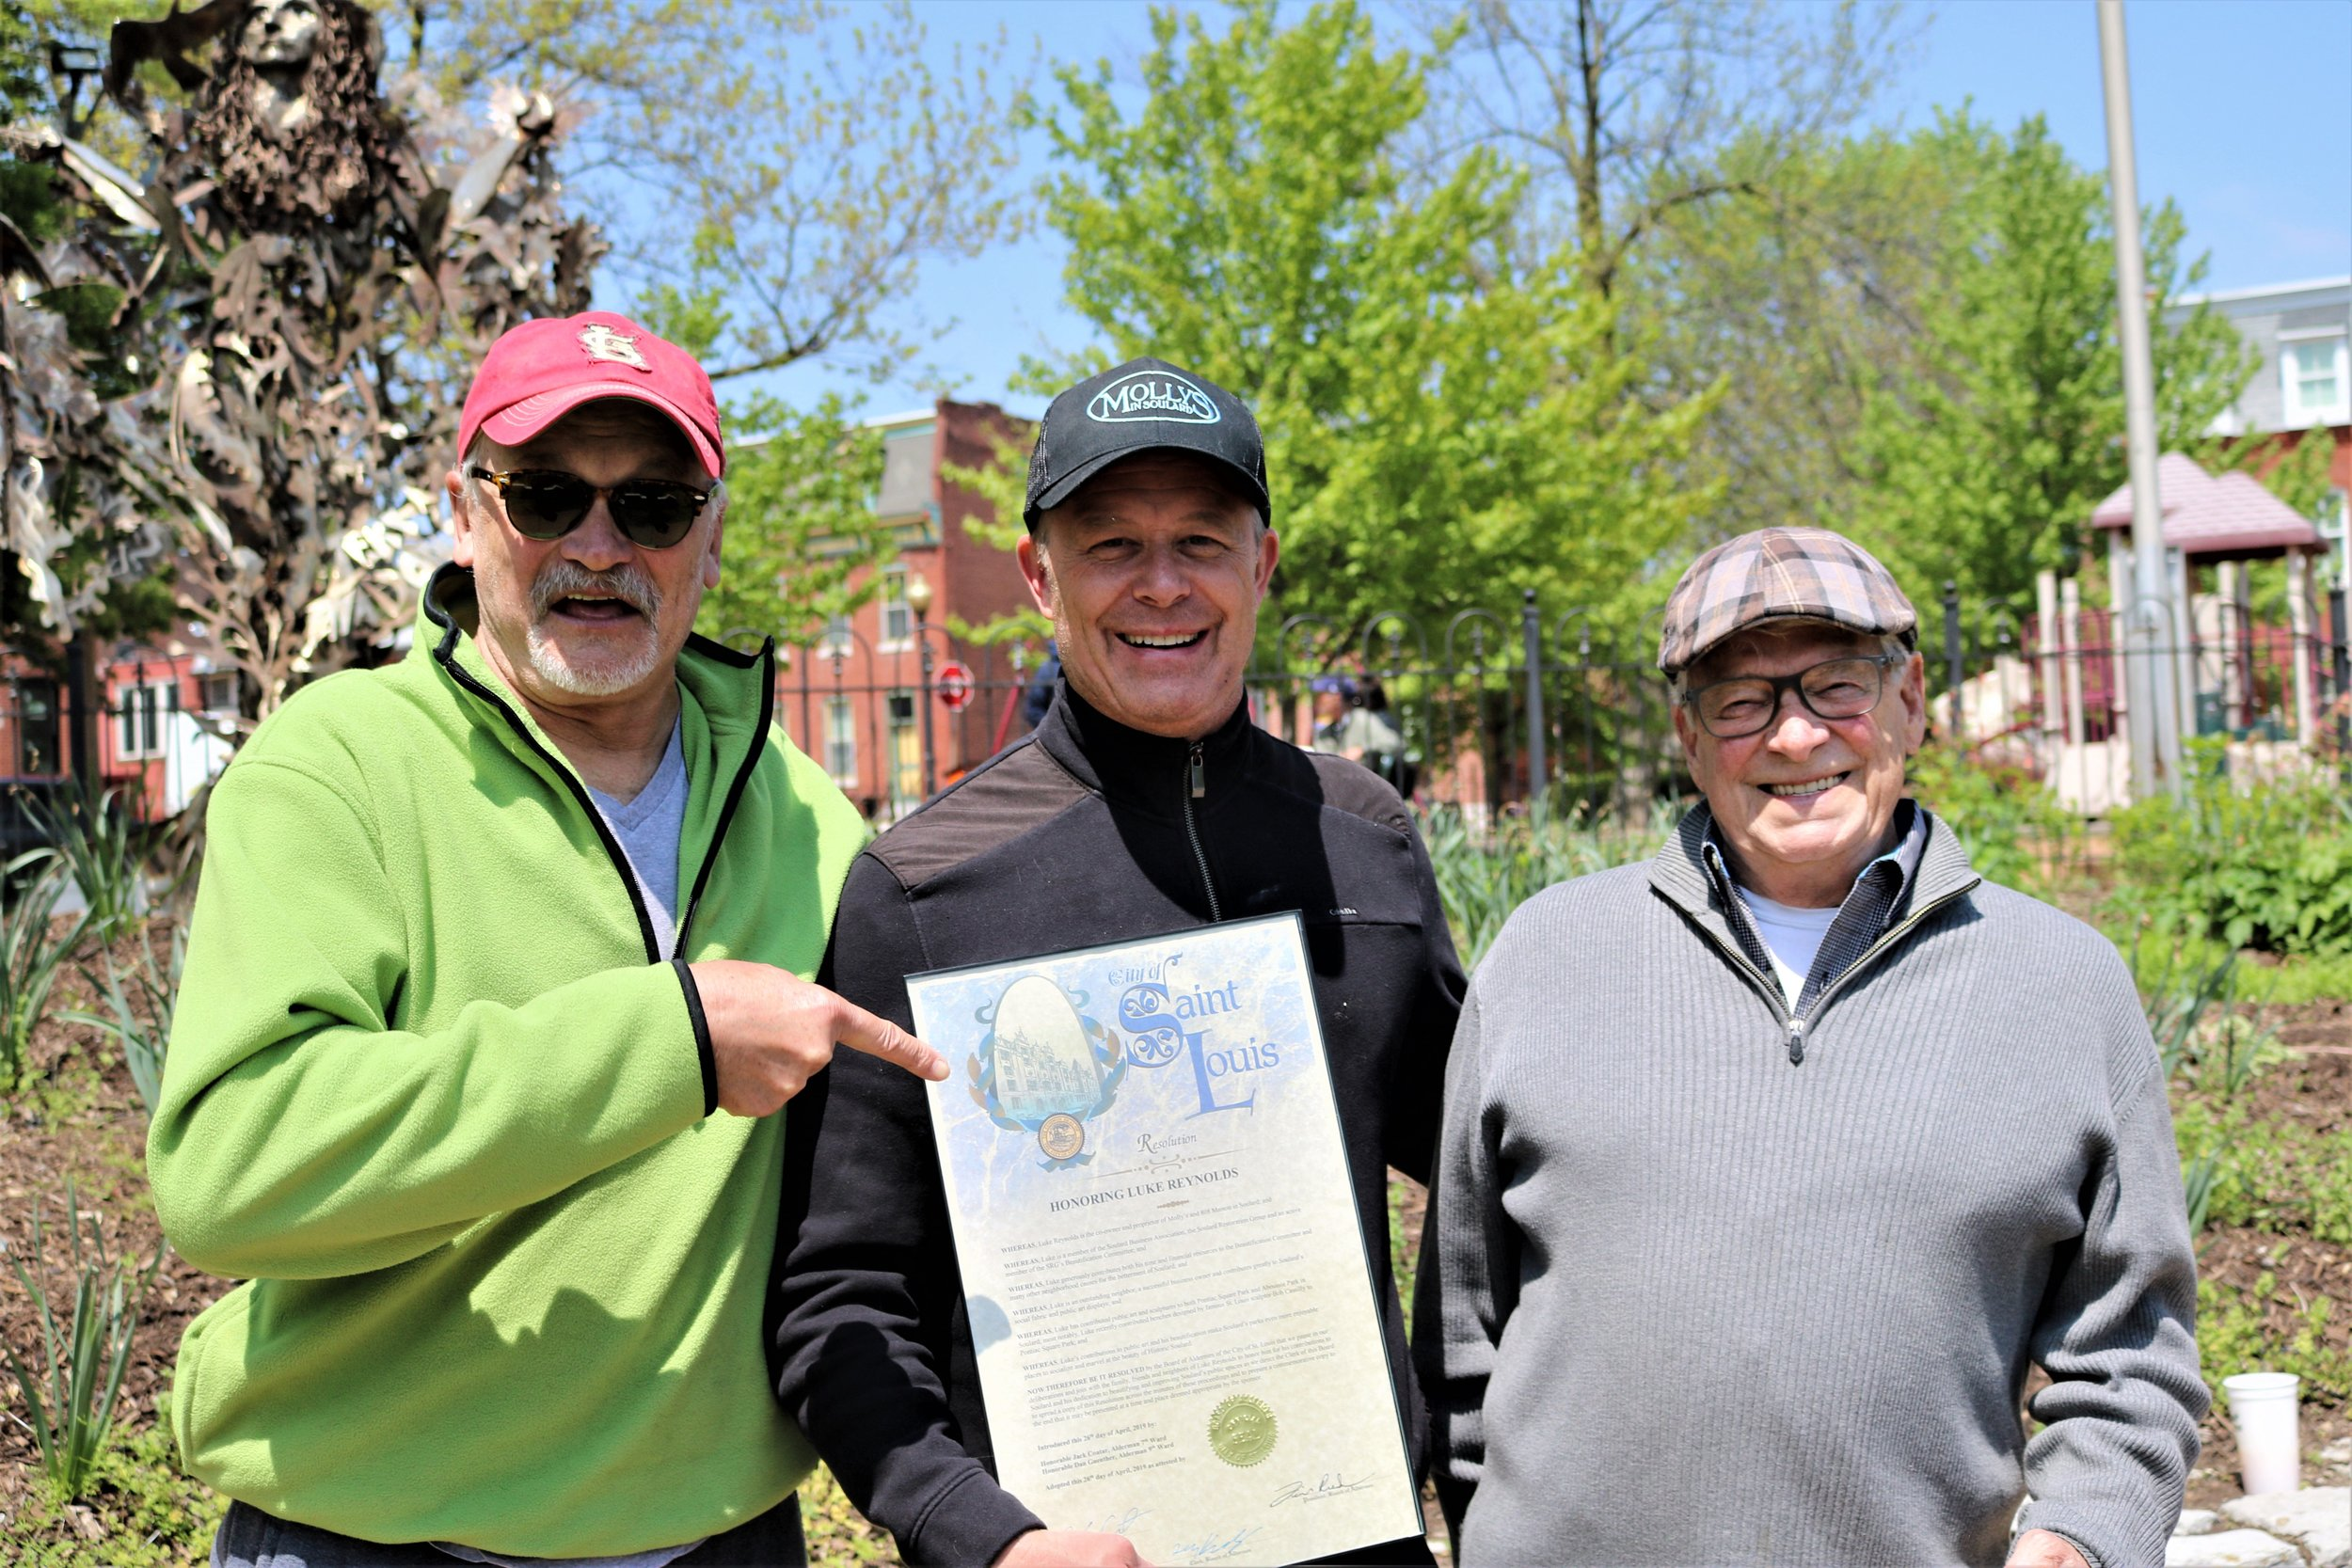 John Durnell, Luke Reynolds and Richard Eaton, chair of the SRG Beautification Committee